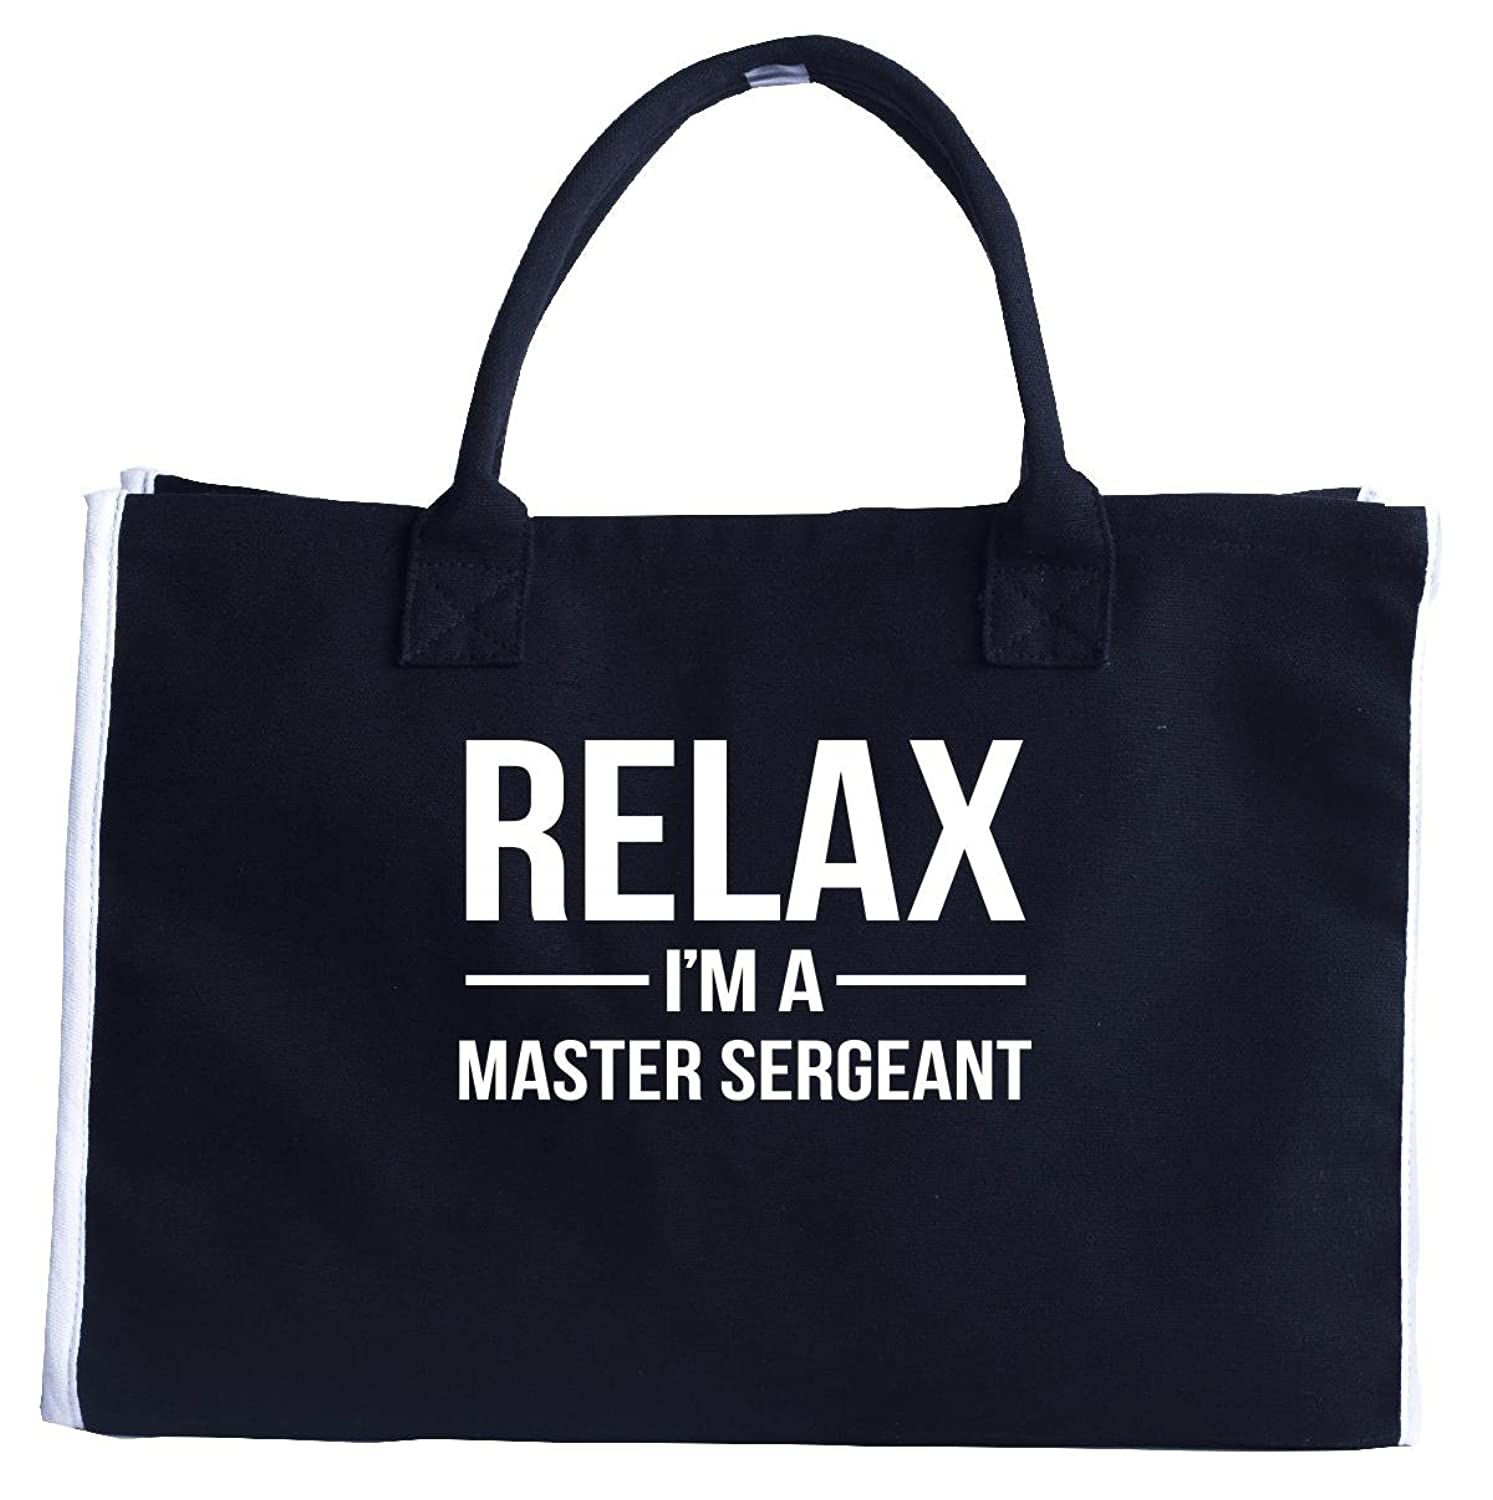 Relax I'm A Master Sergeant. Cool Gift - Fashion Tote Bag